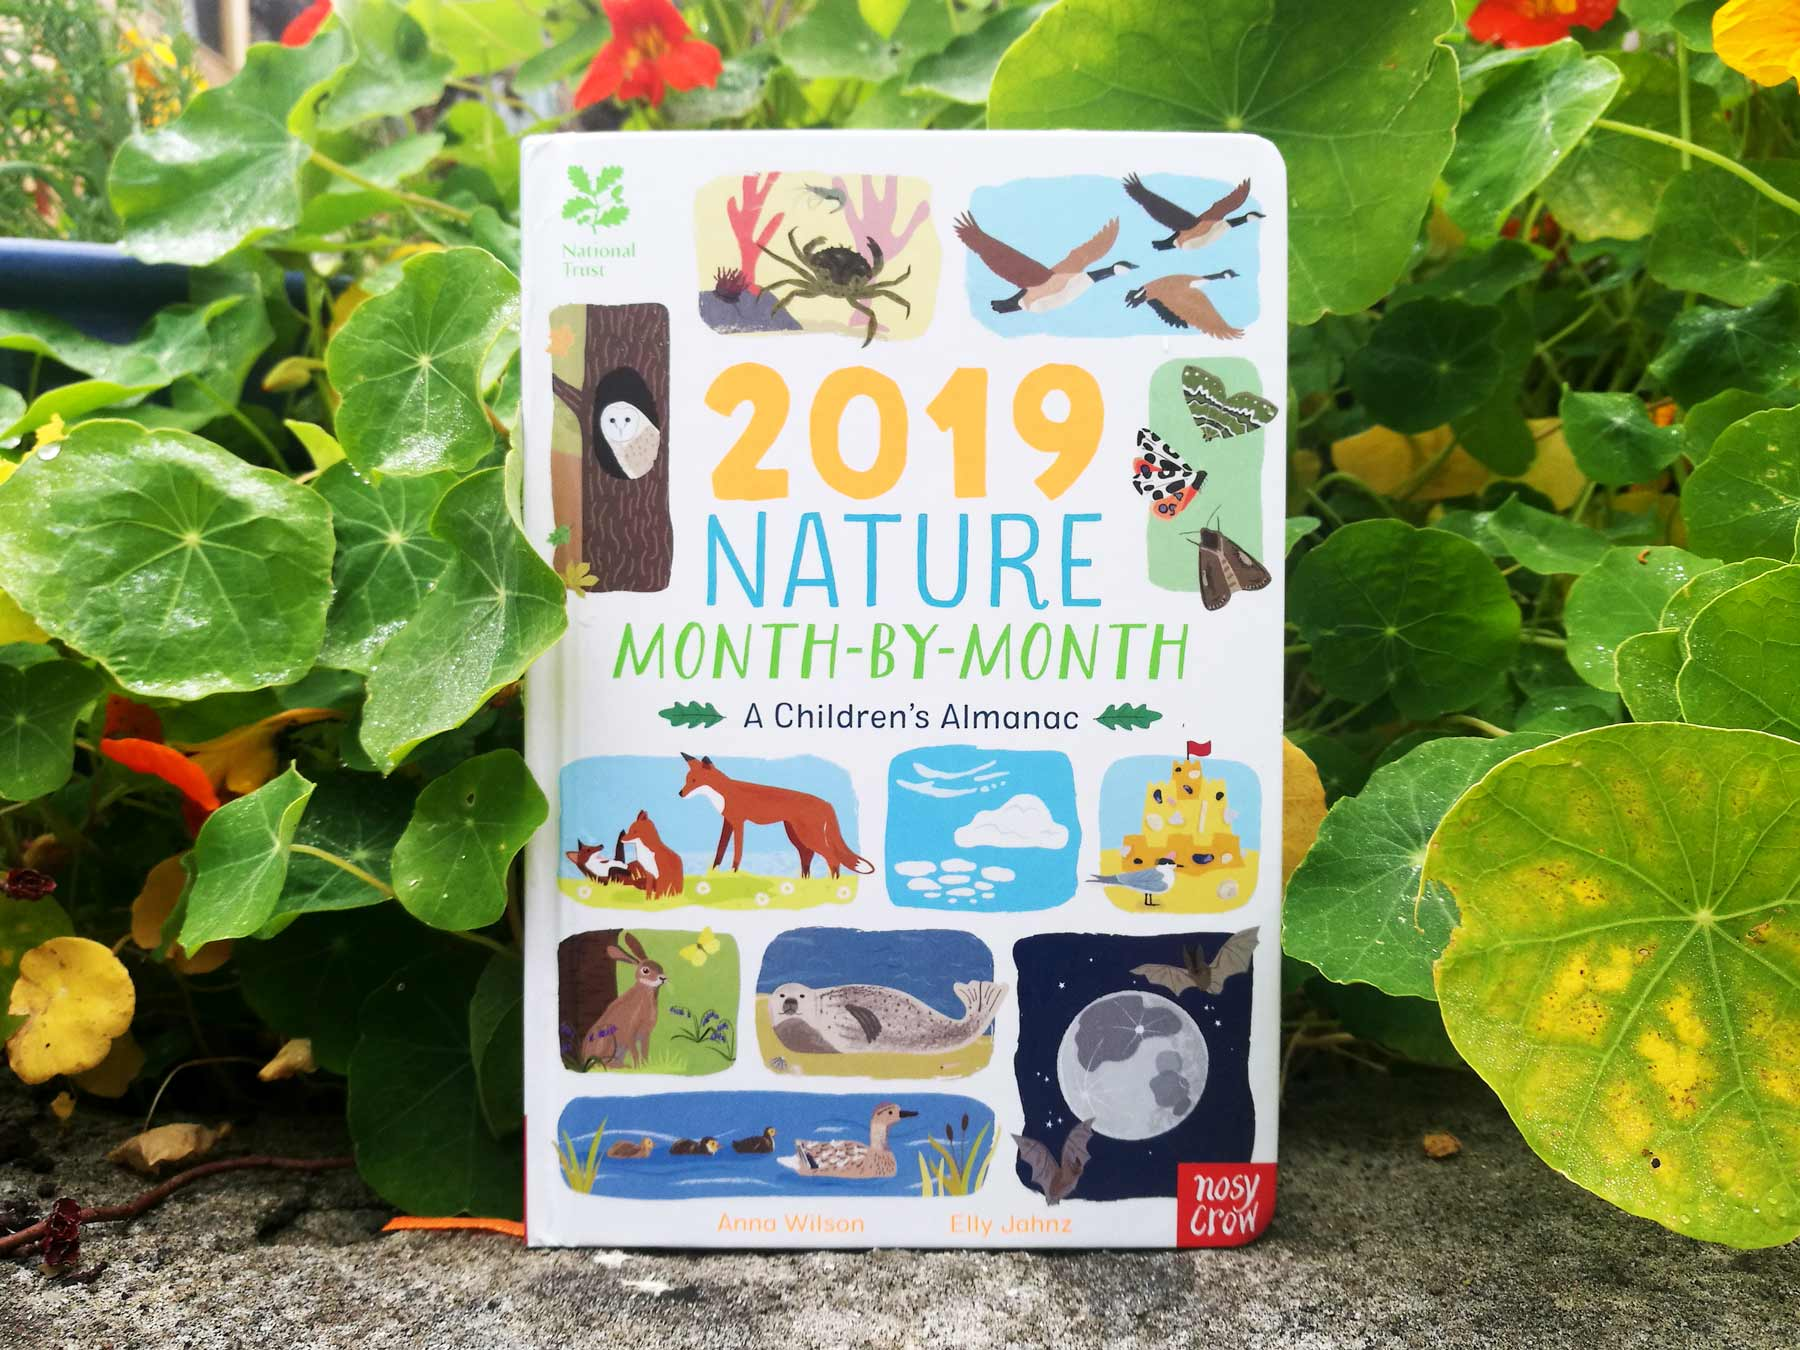 2019 Nature Month by Month published by Nosy Crow and illustrated by Elly Jahnz